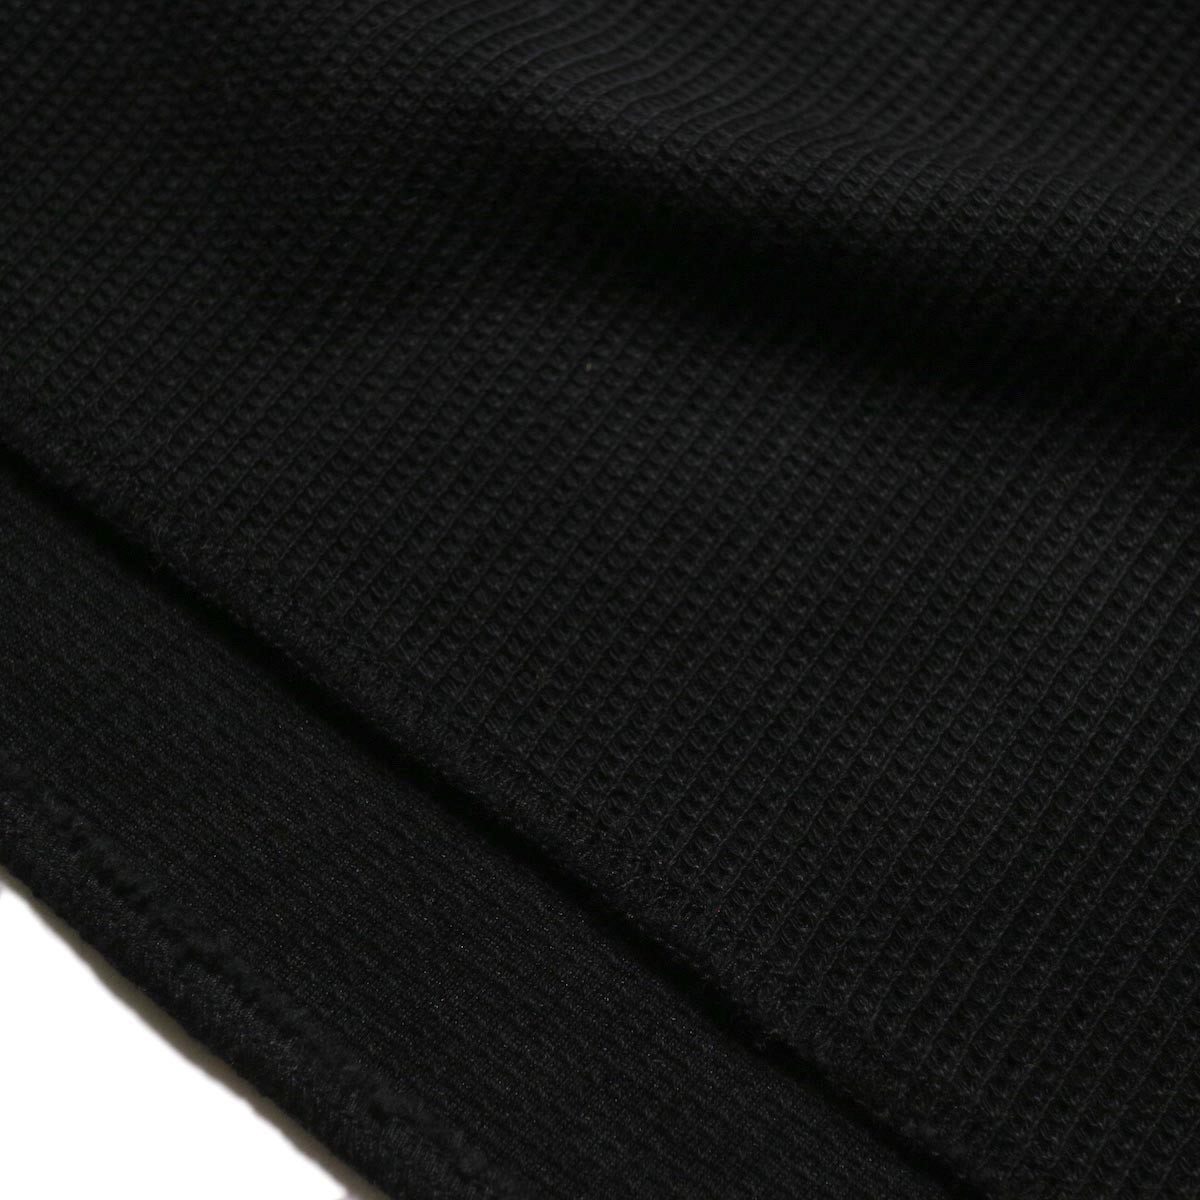 blurhms / New Rough & Smooth Thermal Over-Neck Loose Fit (Black) オーバーロック